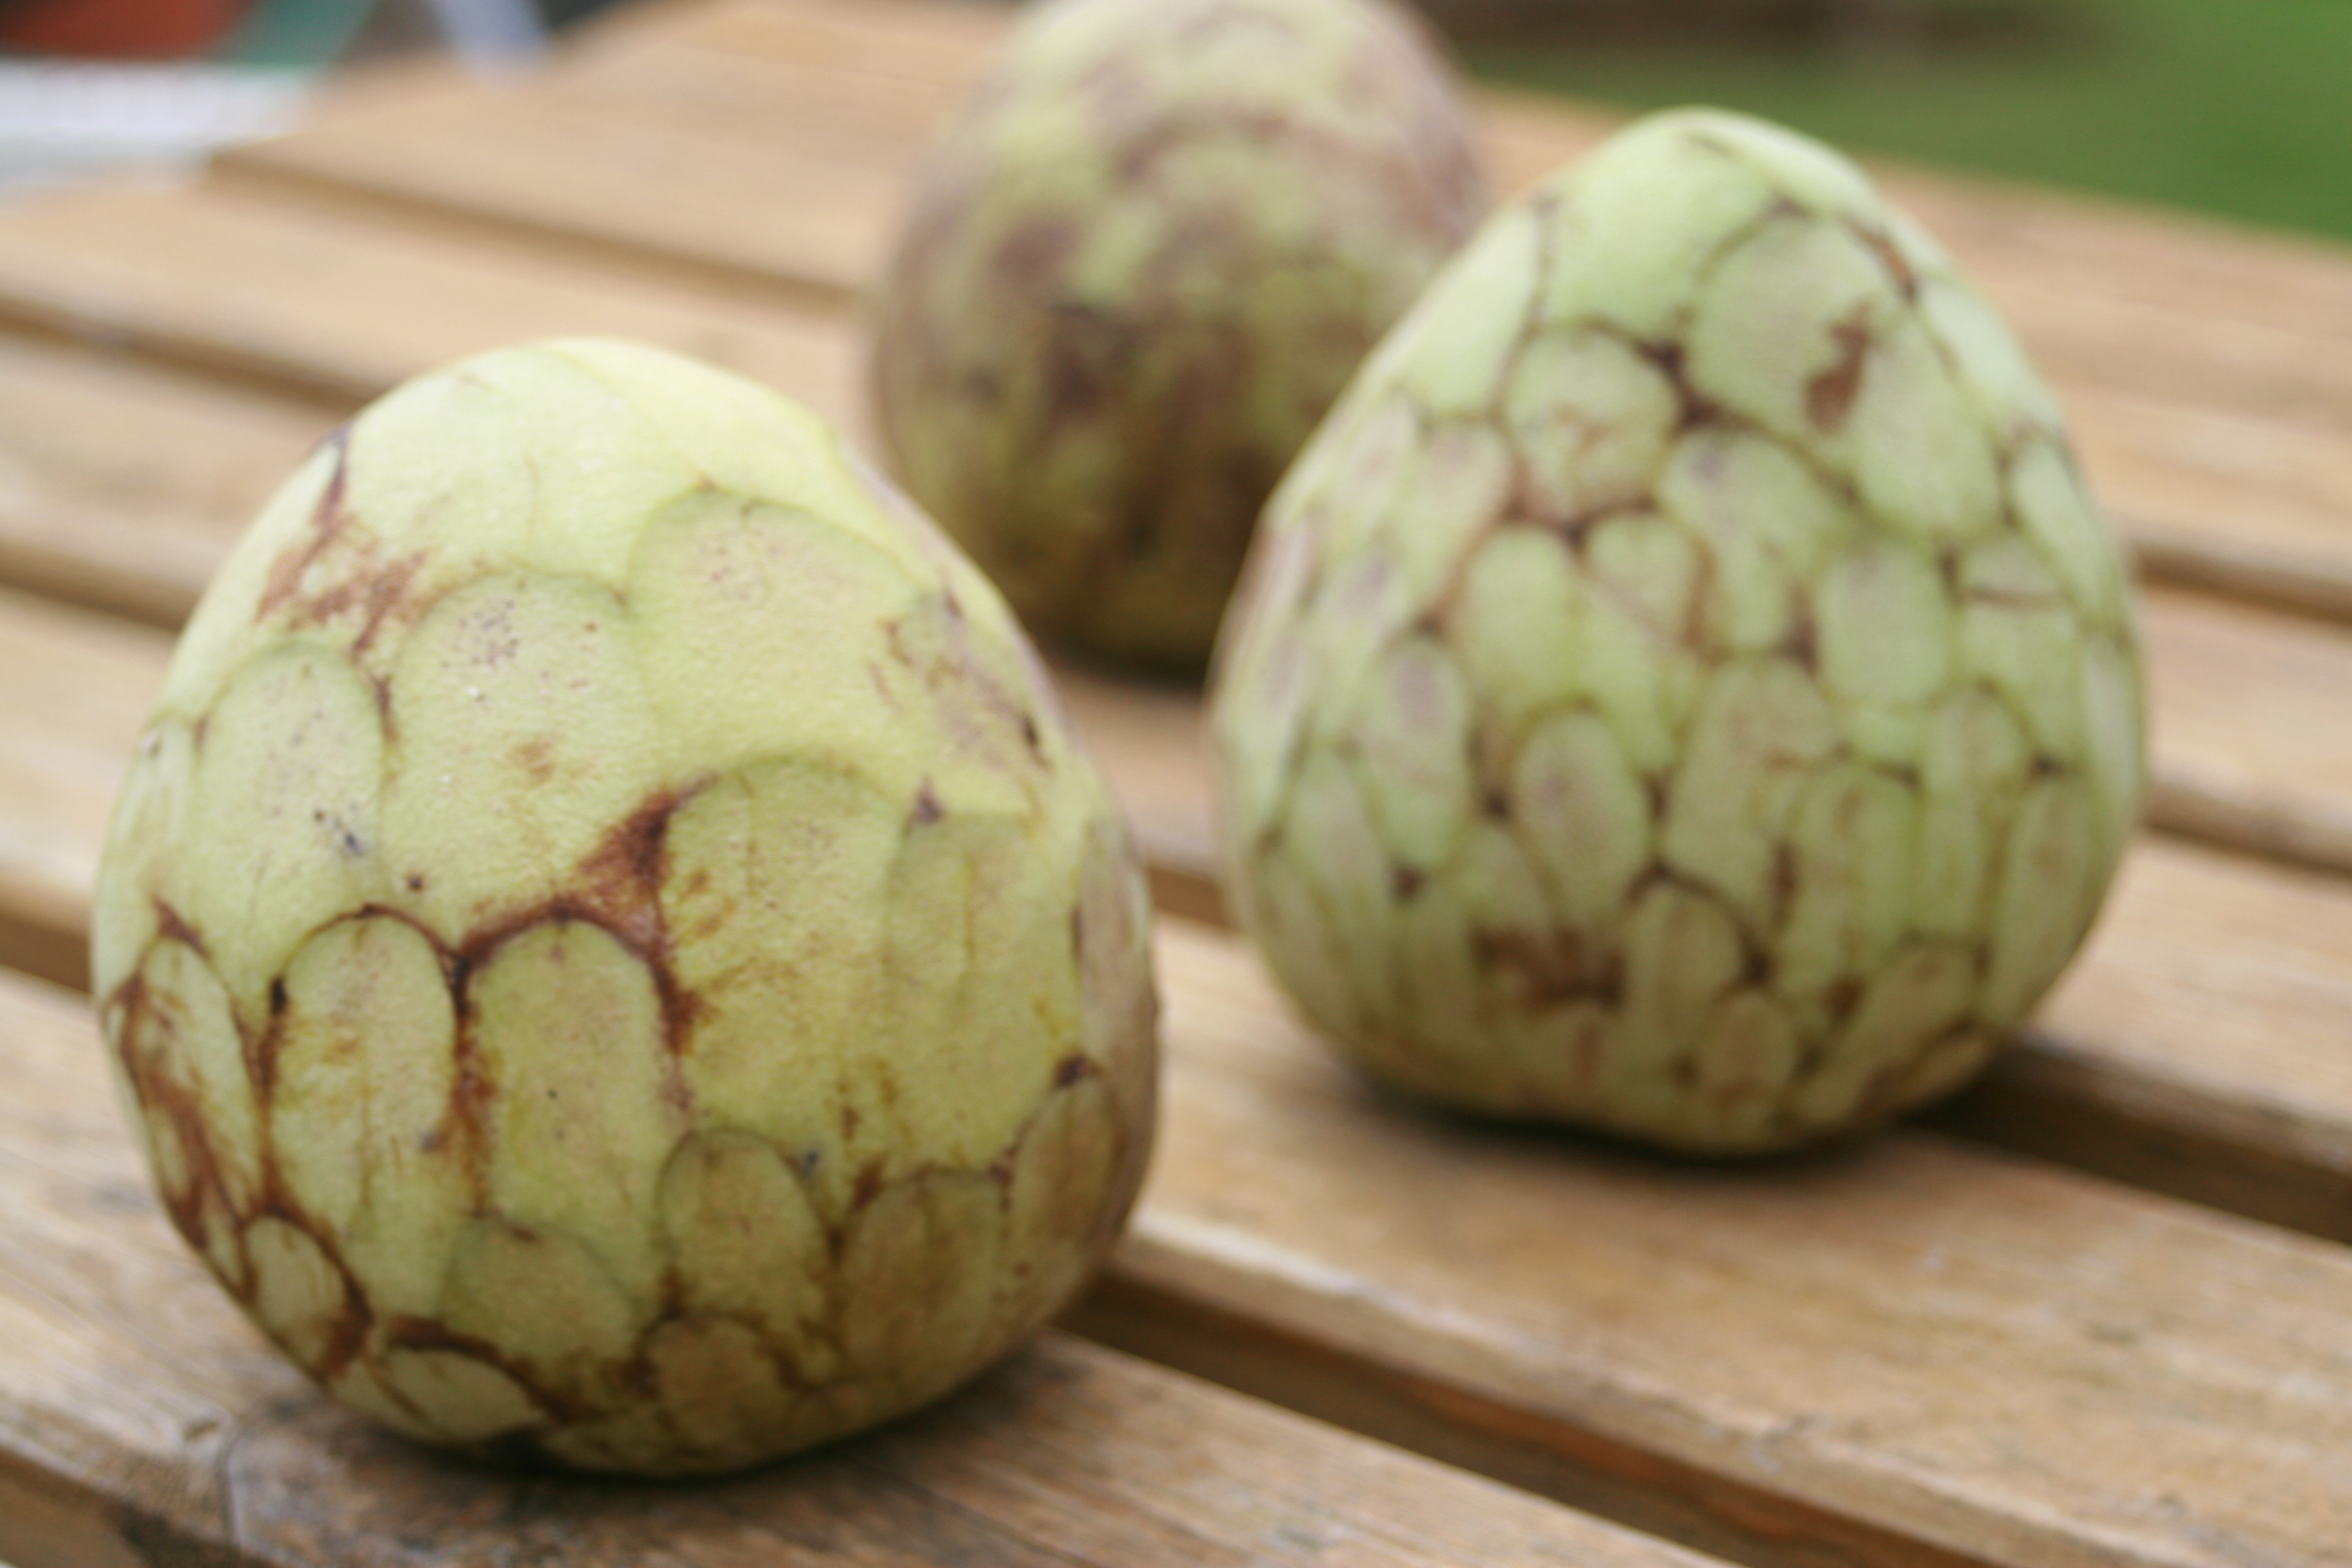 jamaican custard apple - photo #20